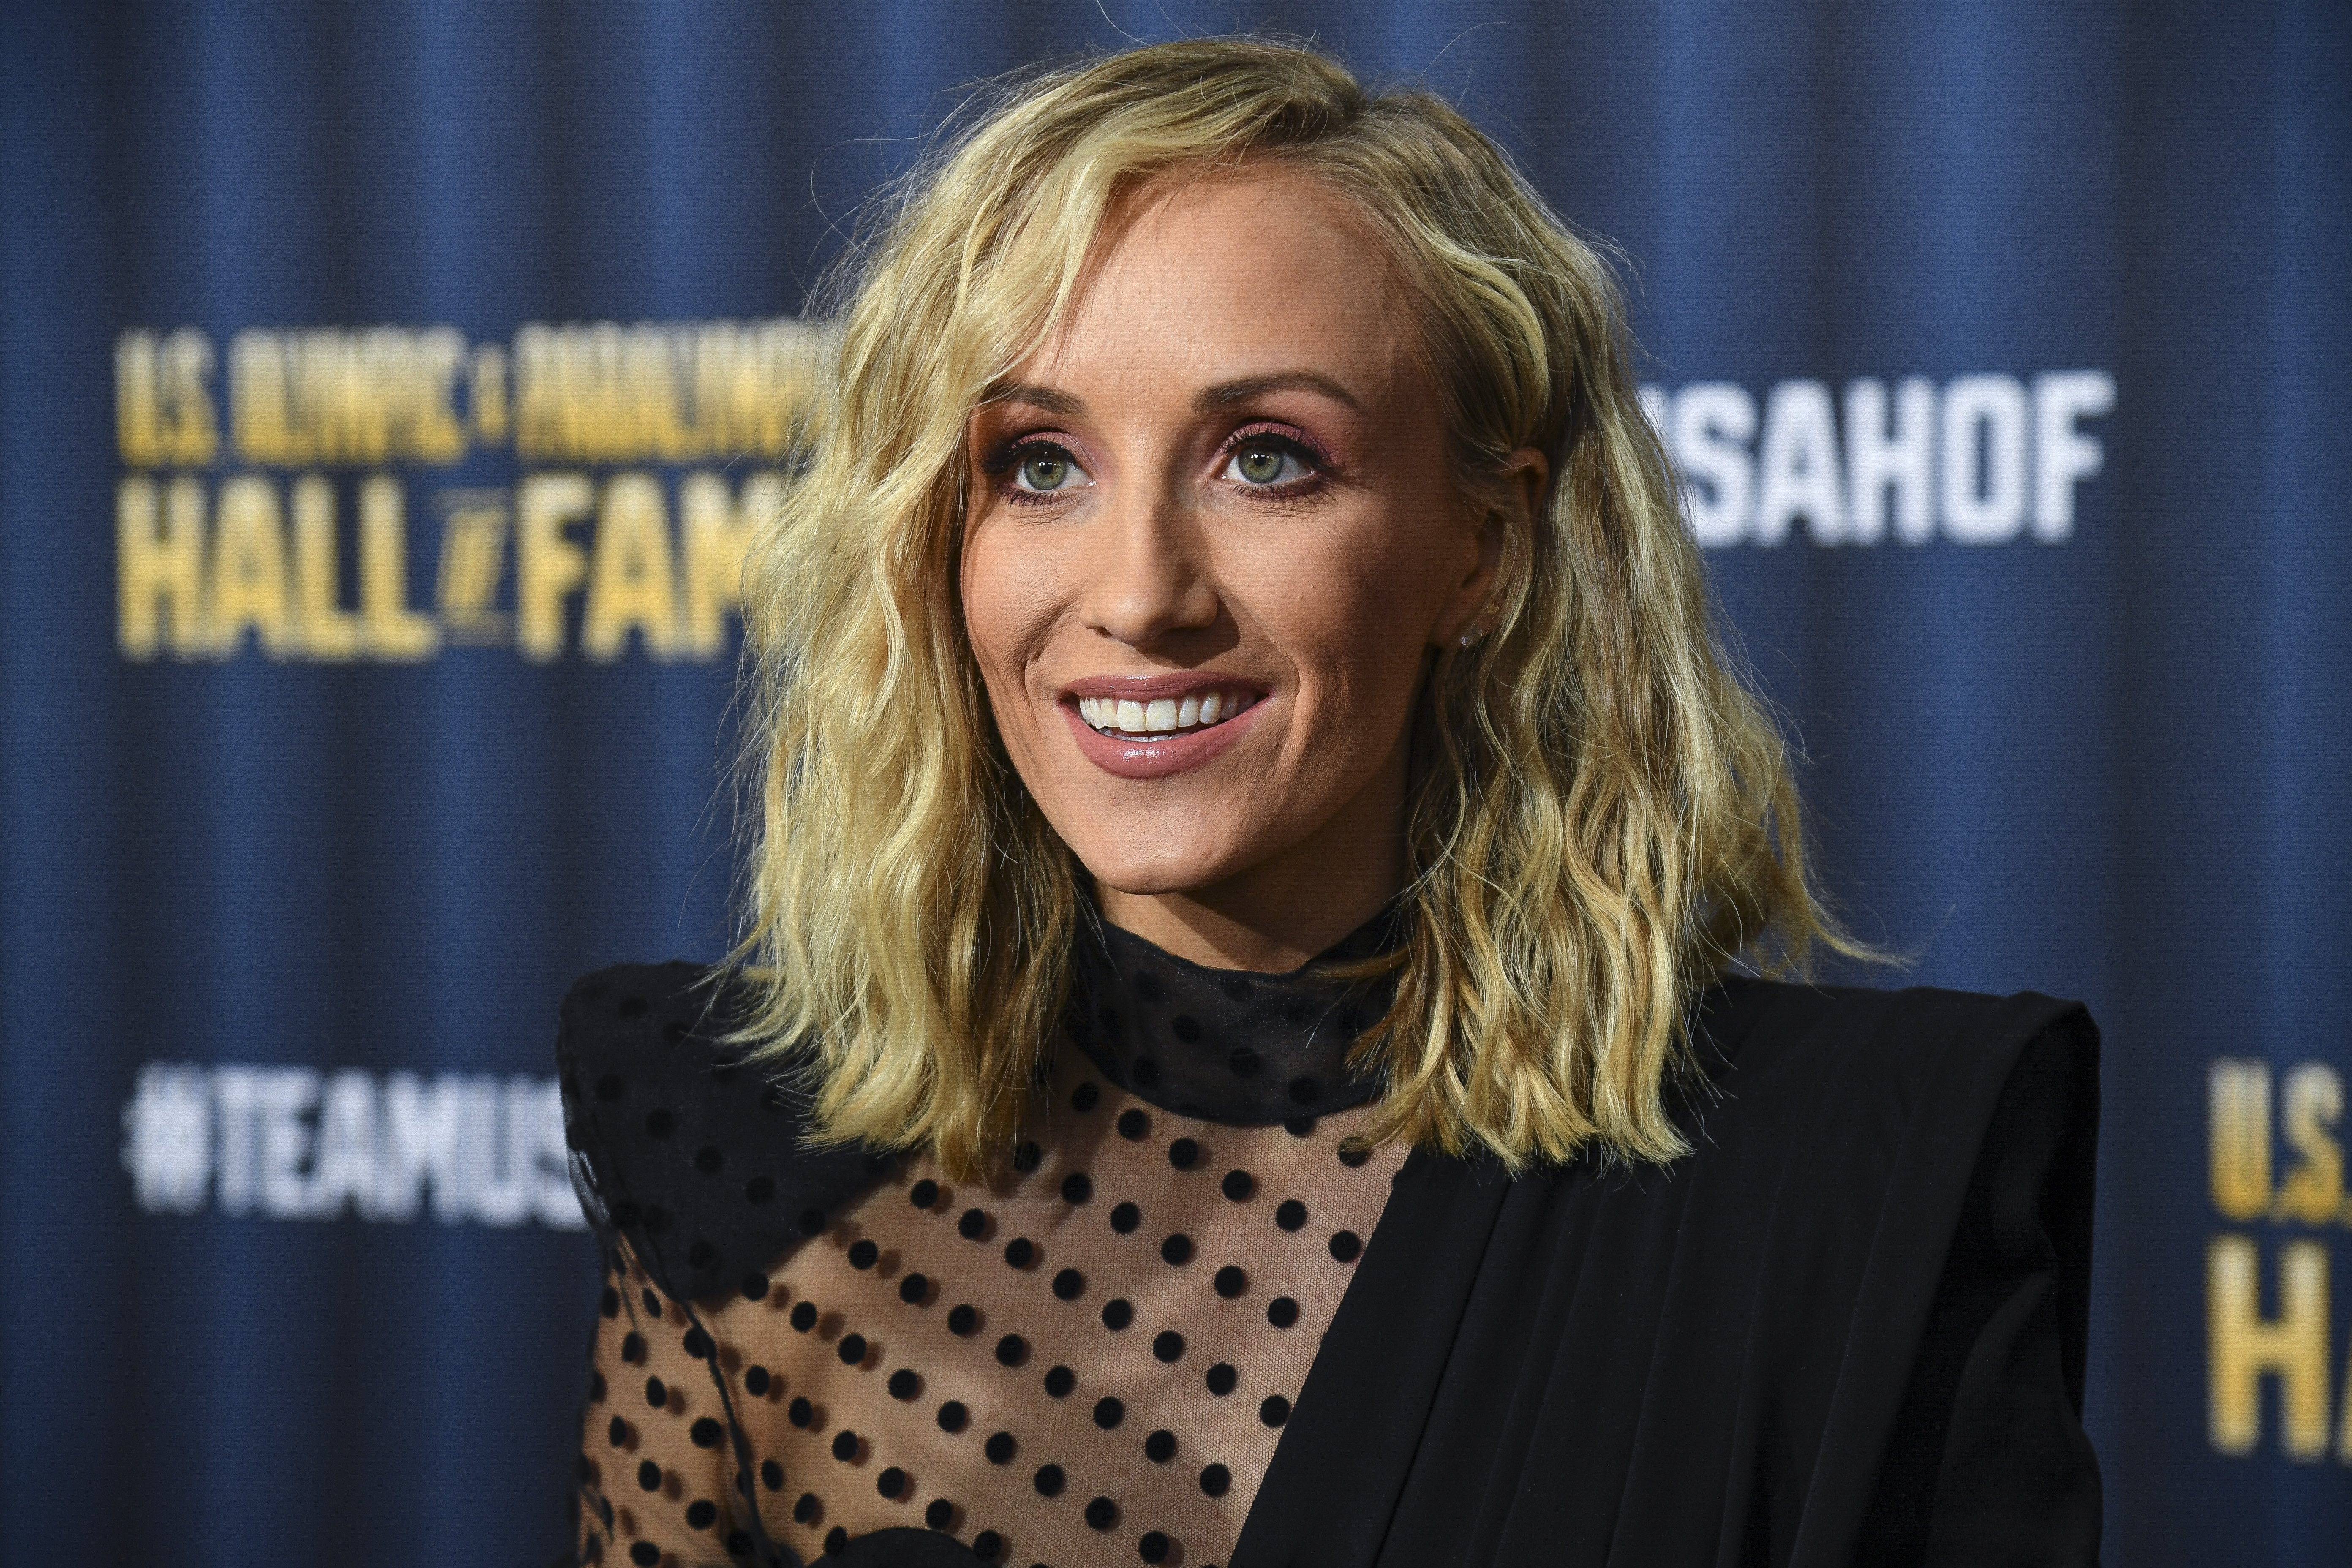 Nastia Liukin at the U.S. Olympic Hall of Fame Class of 2019 Induction Ceremony.| Photo: Getty